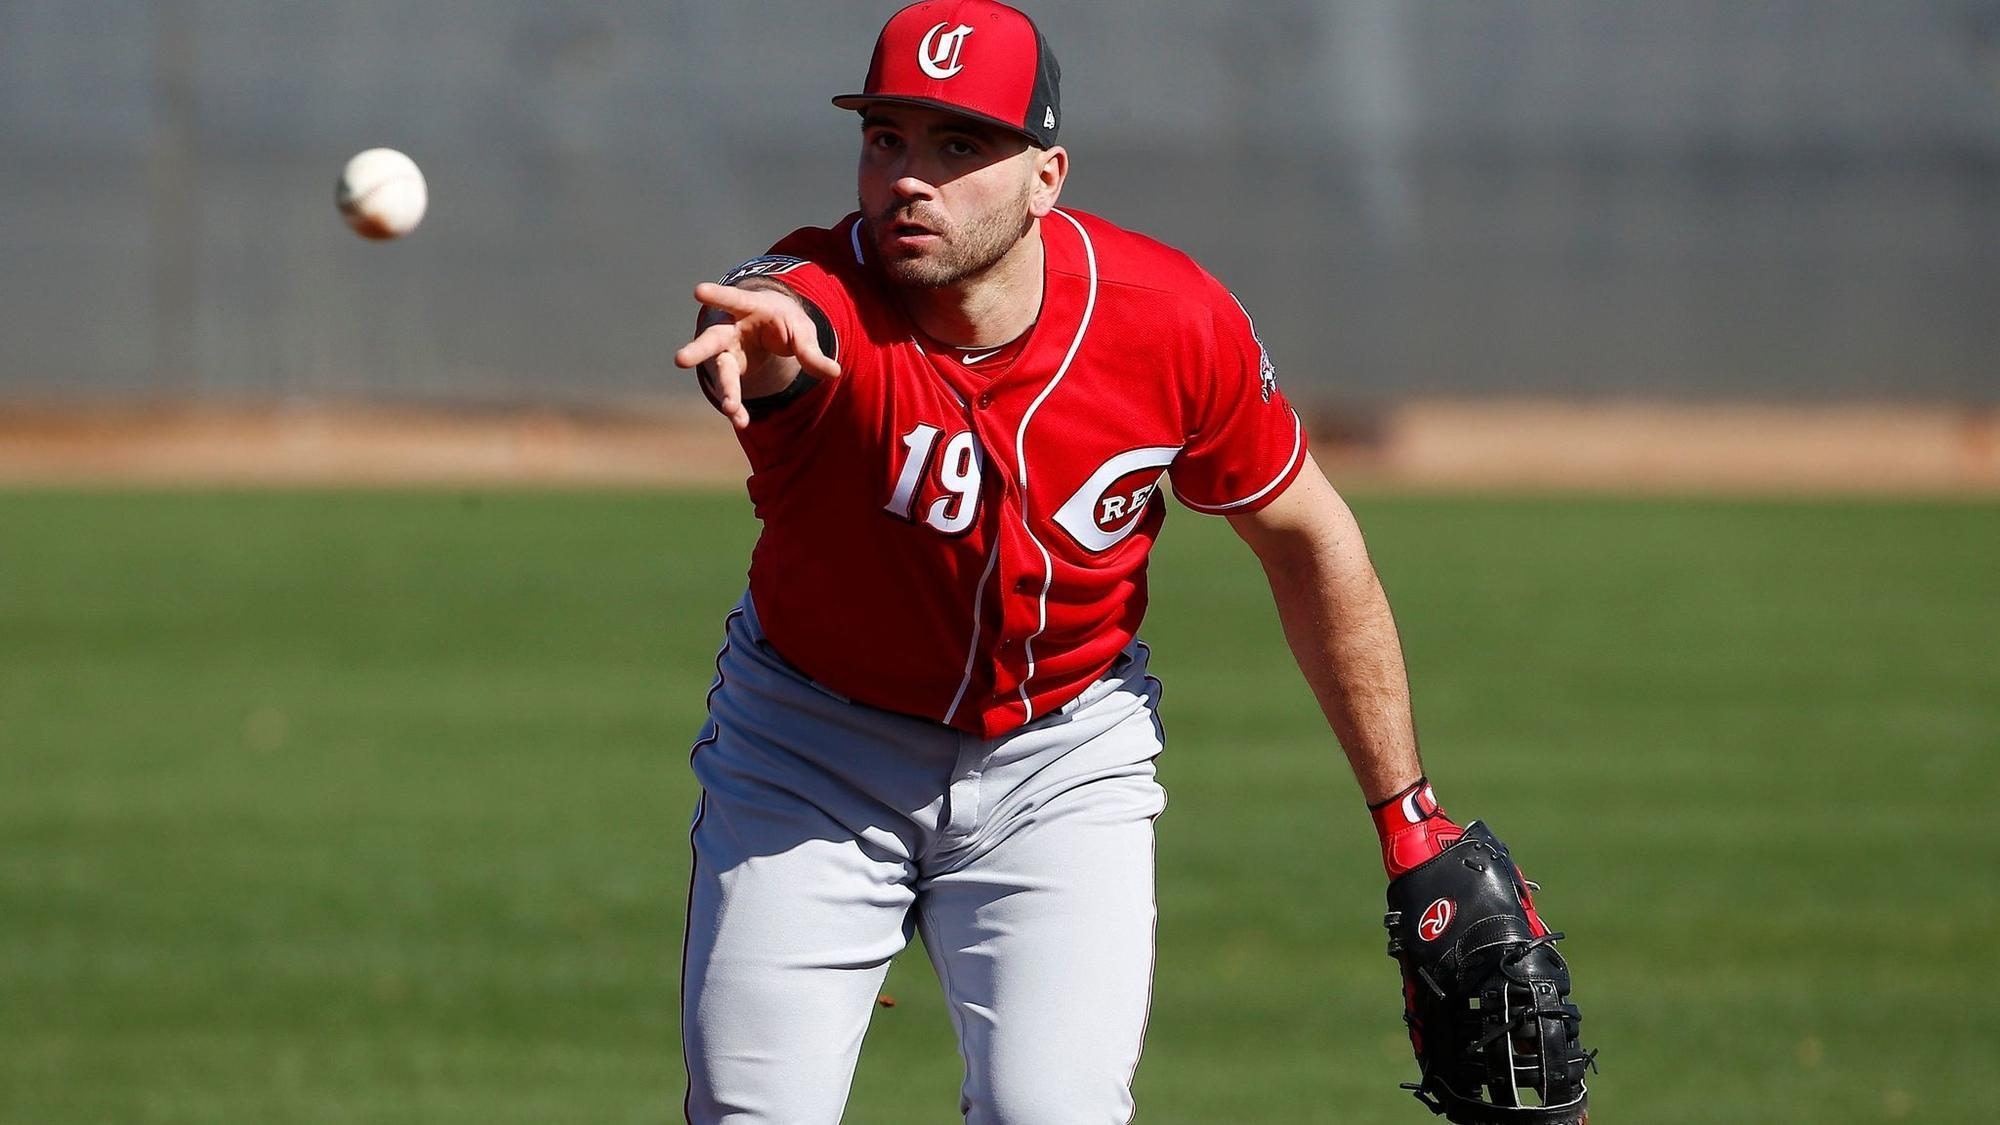 Sd-sp-mlb-progress-report-cincinnati-reds-20180304